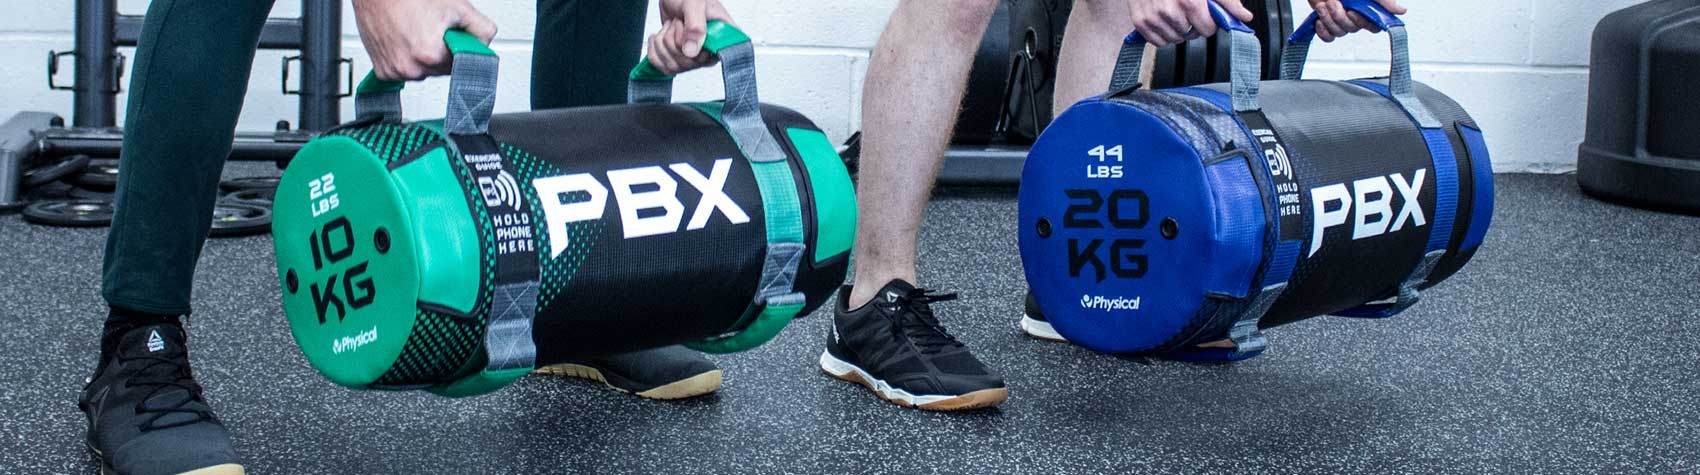 Exercisers holding Power Bags